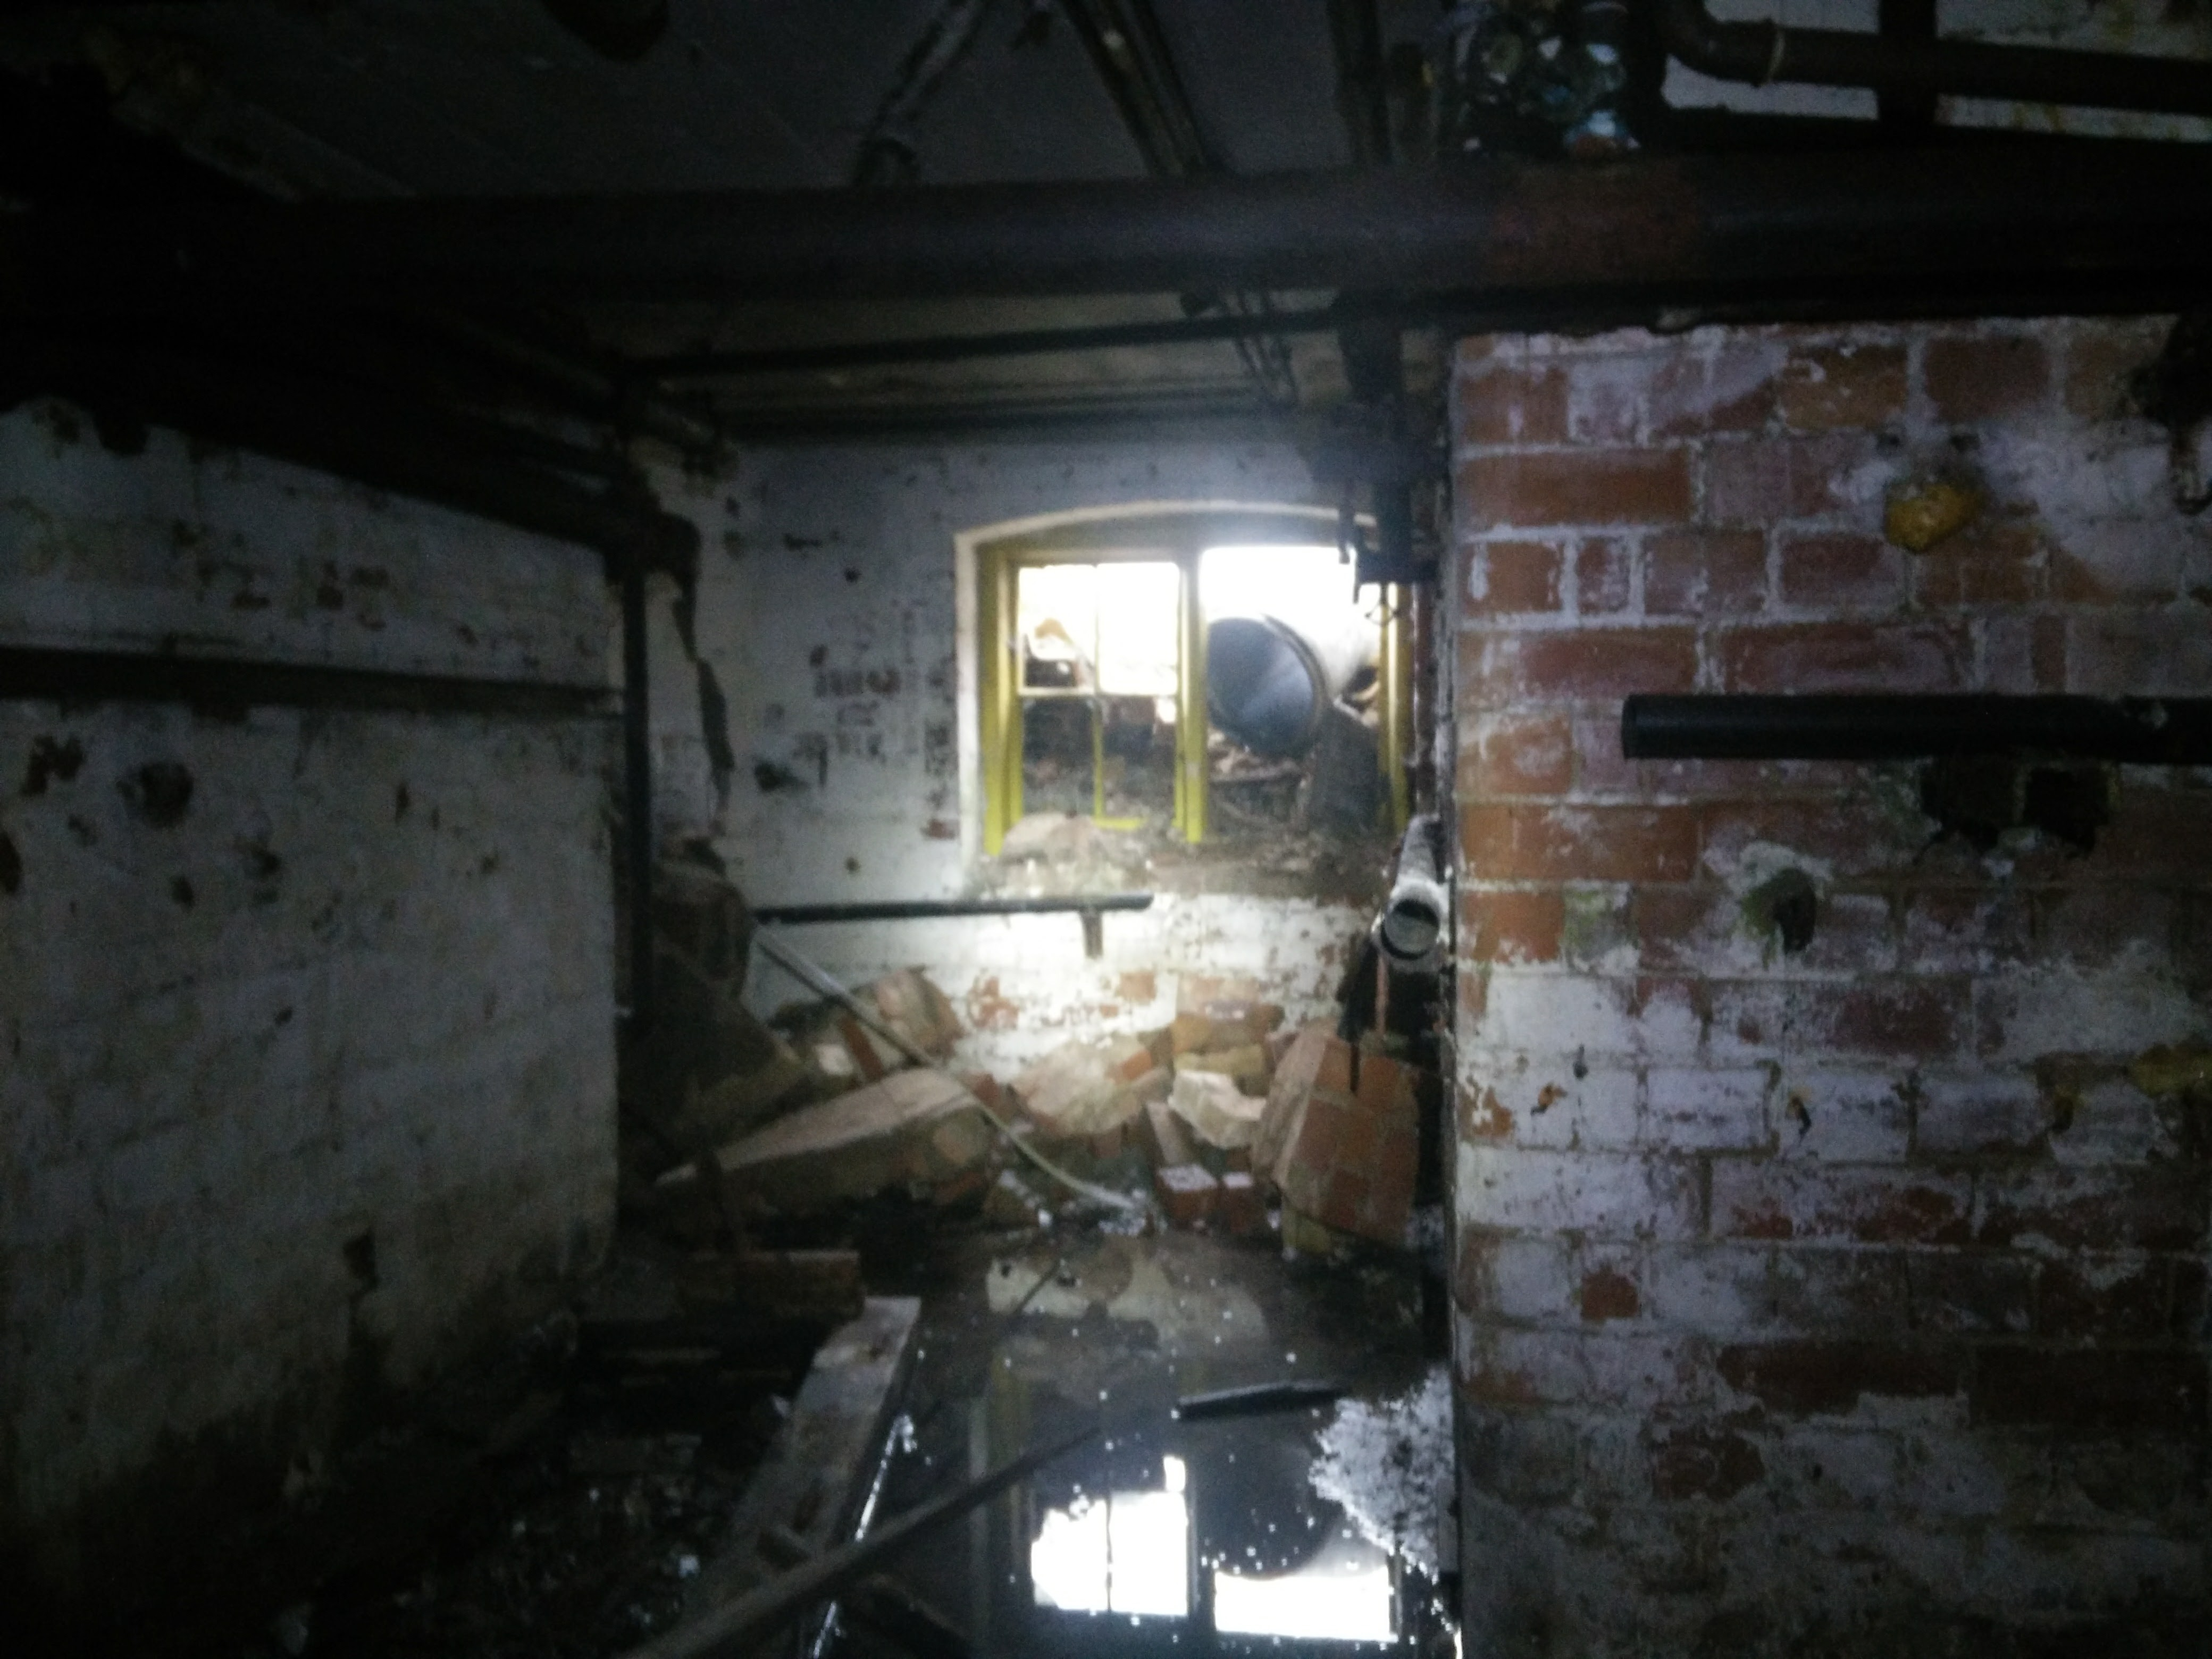 Urban Exploration – Rauceby Hospital, Sleaford